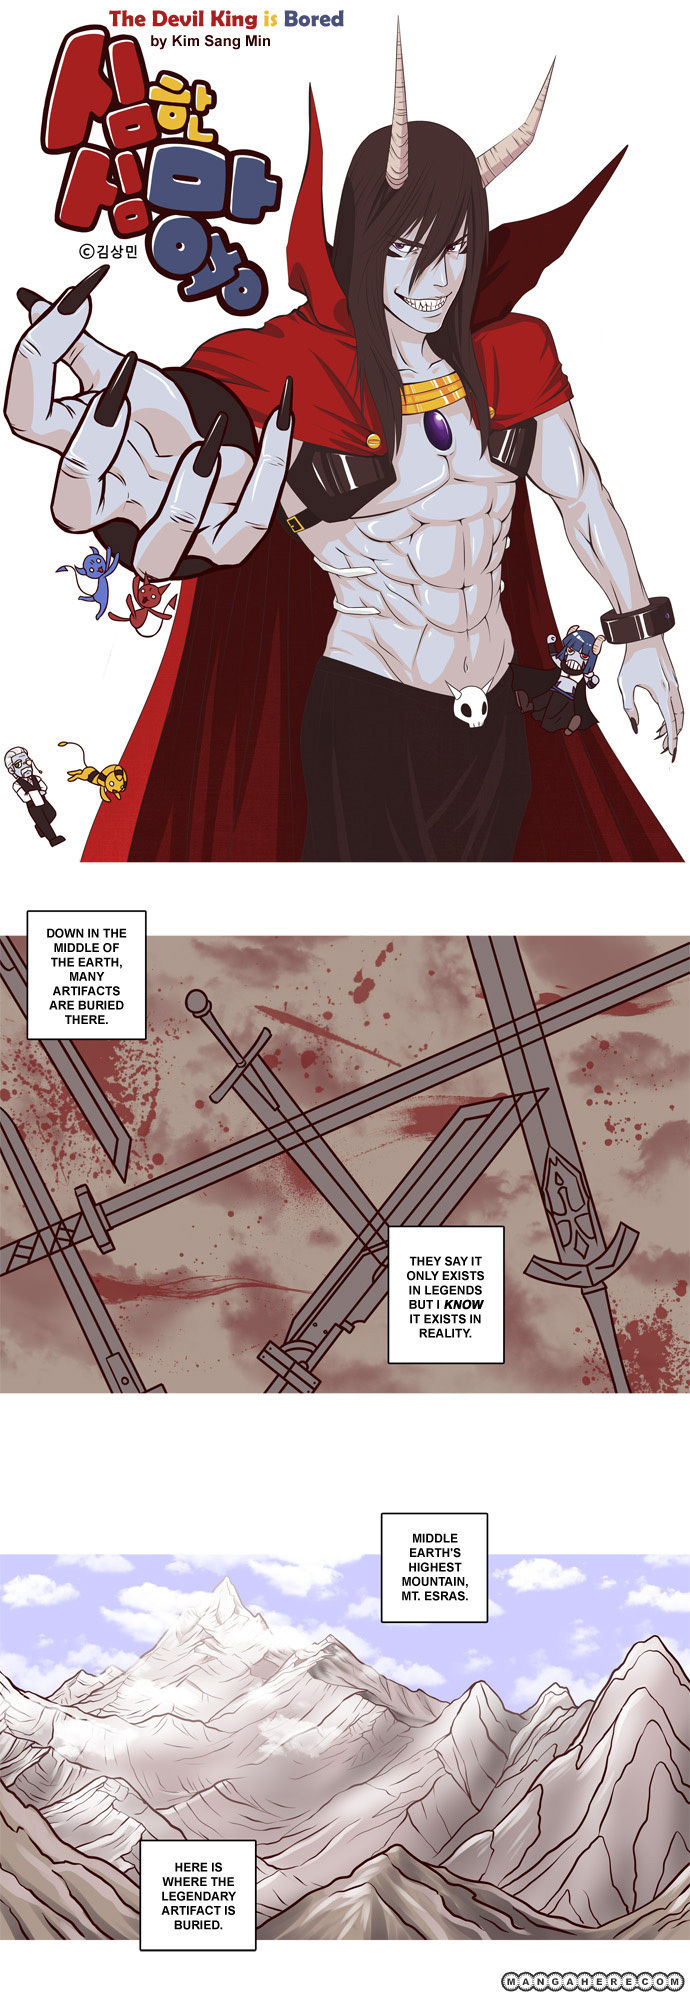 The Devil King Is Bored 6 Page 1